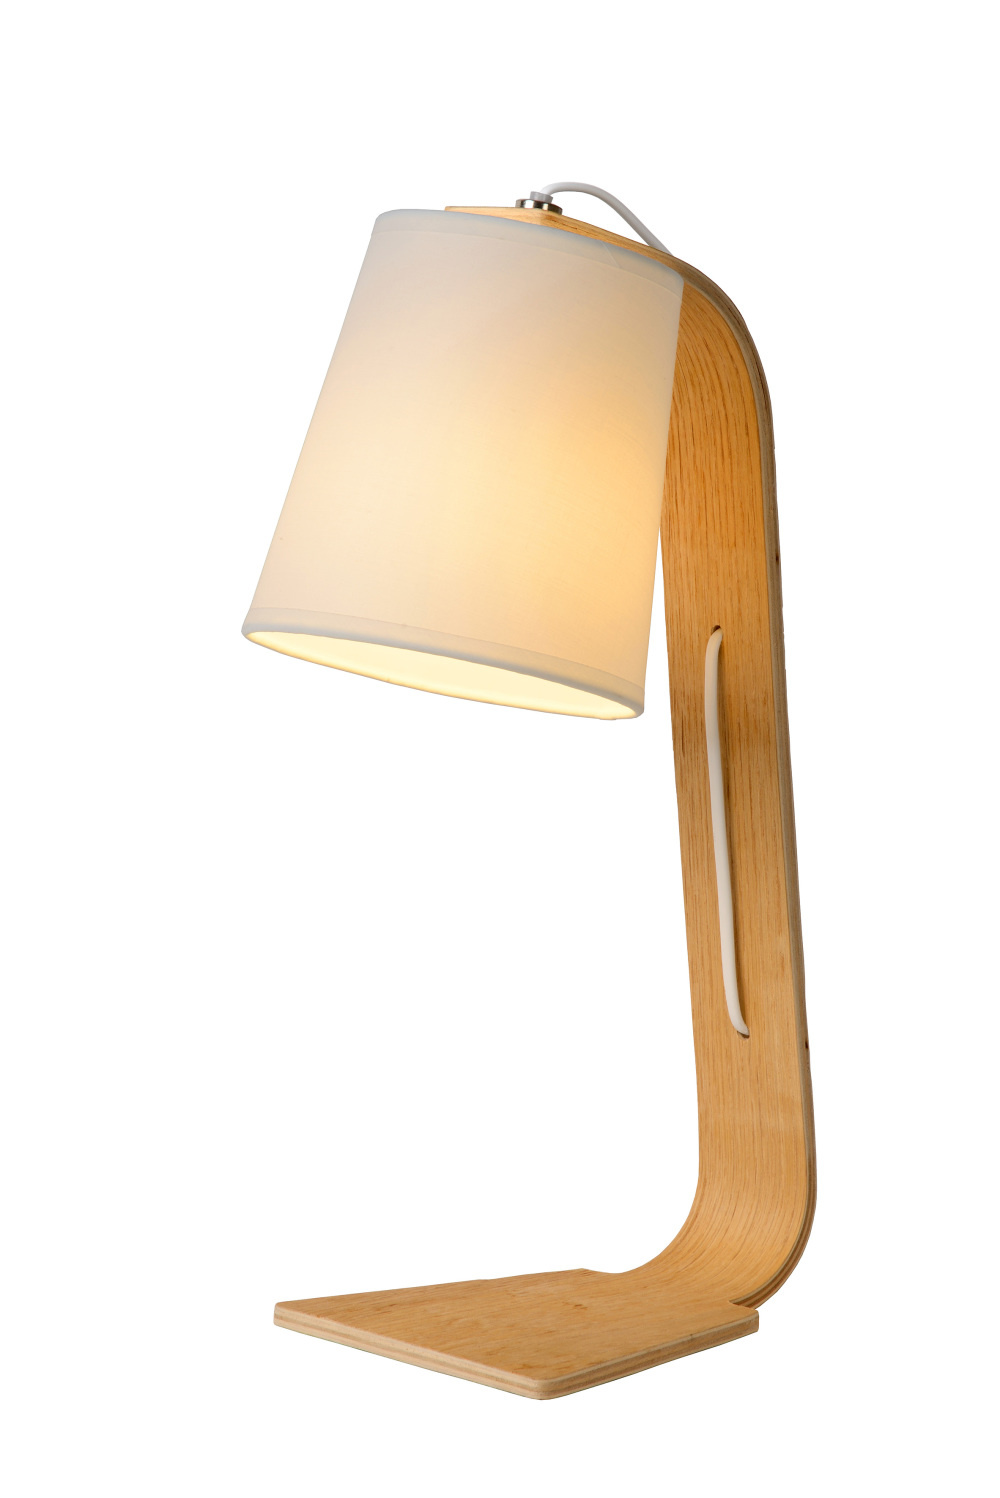 Lucide NORDIC Tafellamp-Wit-1xE14-40W-Hout